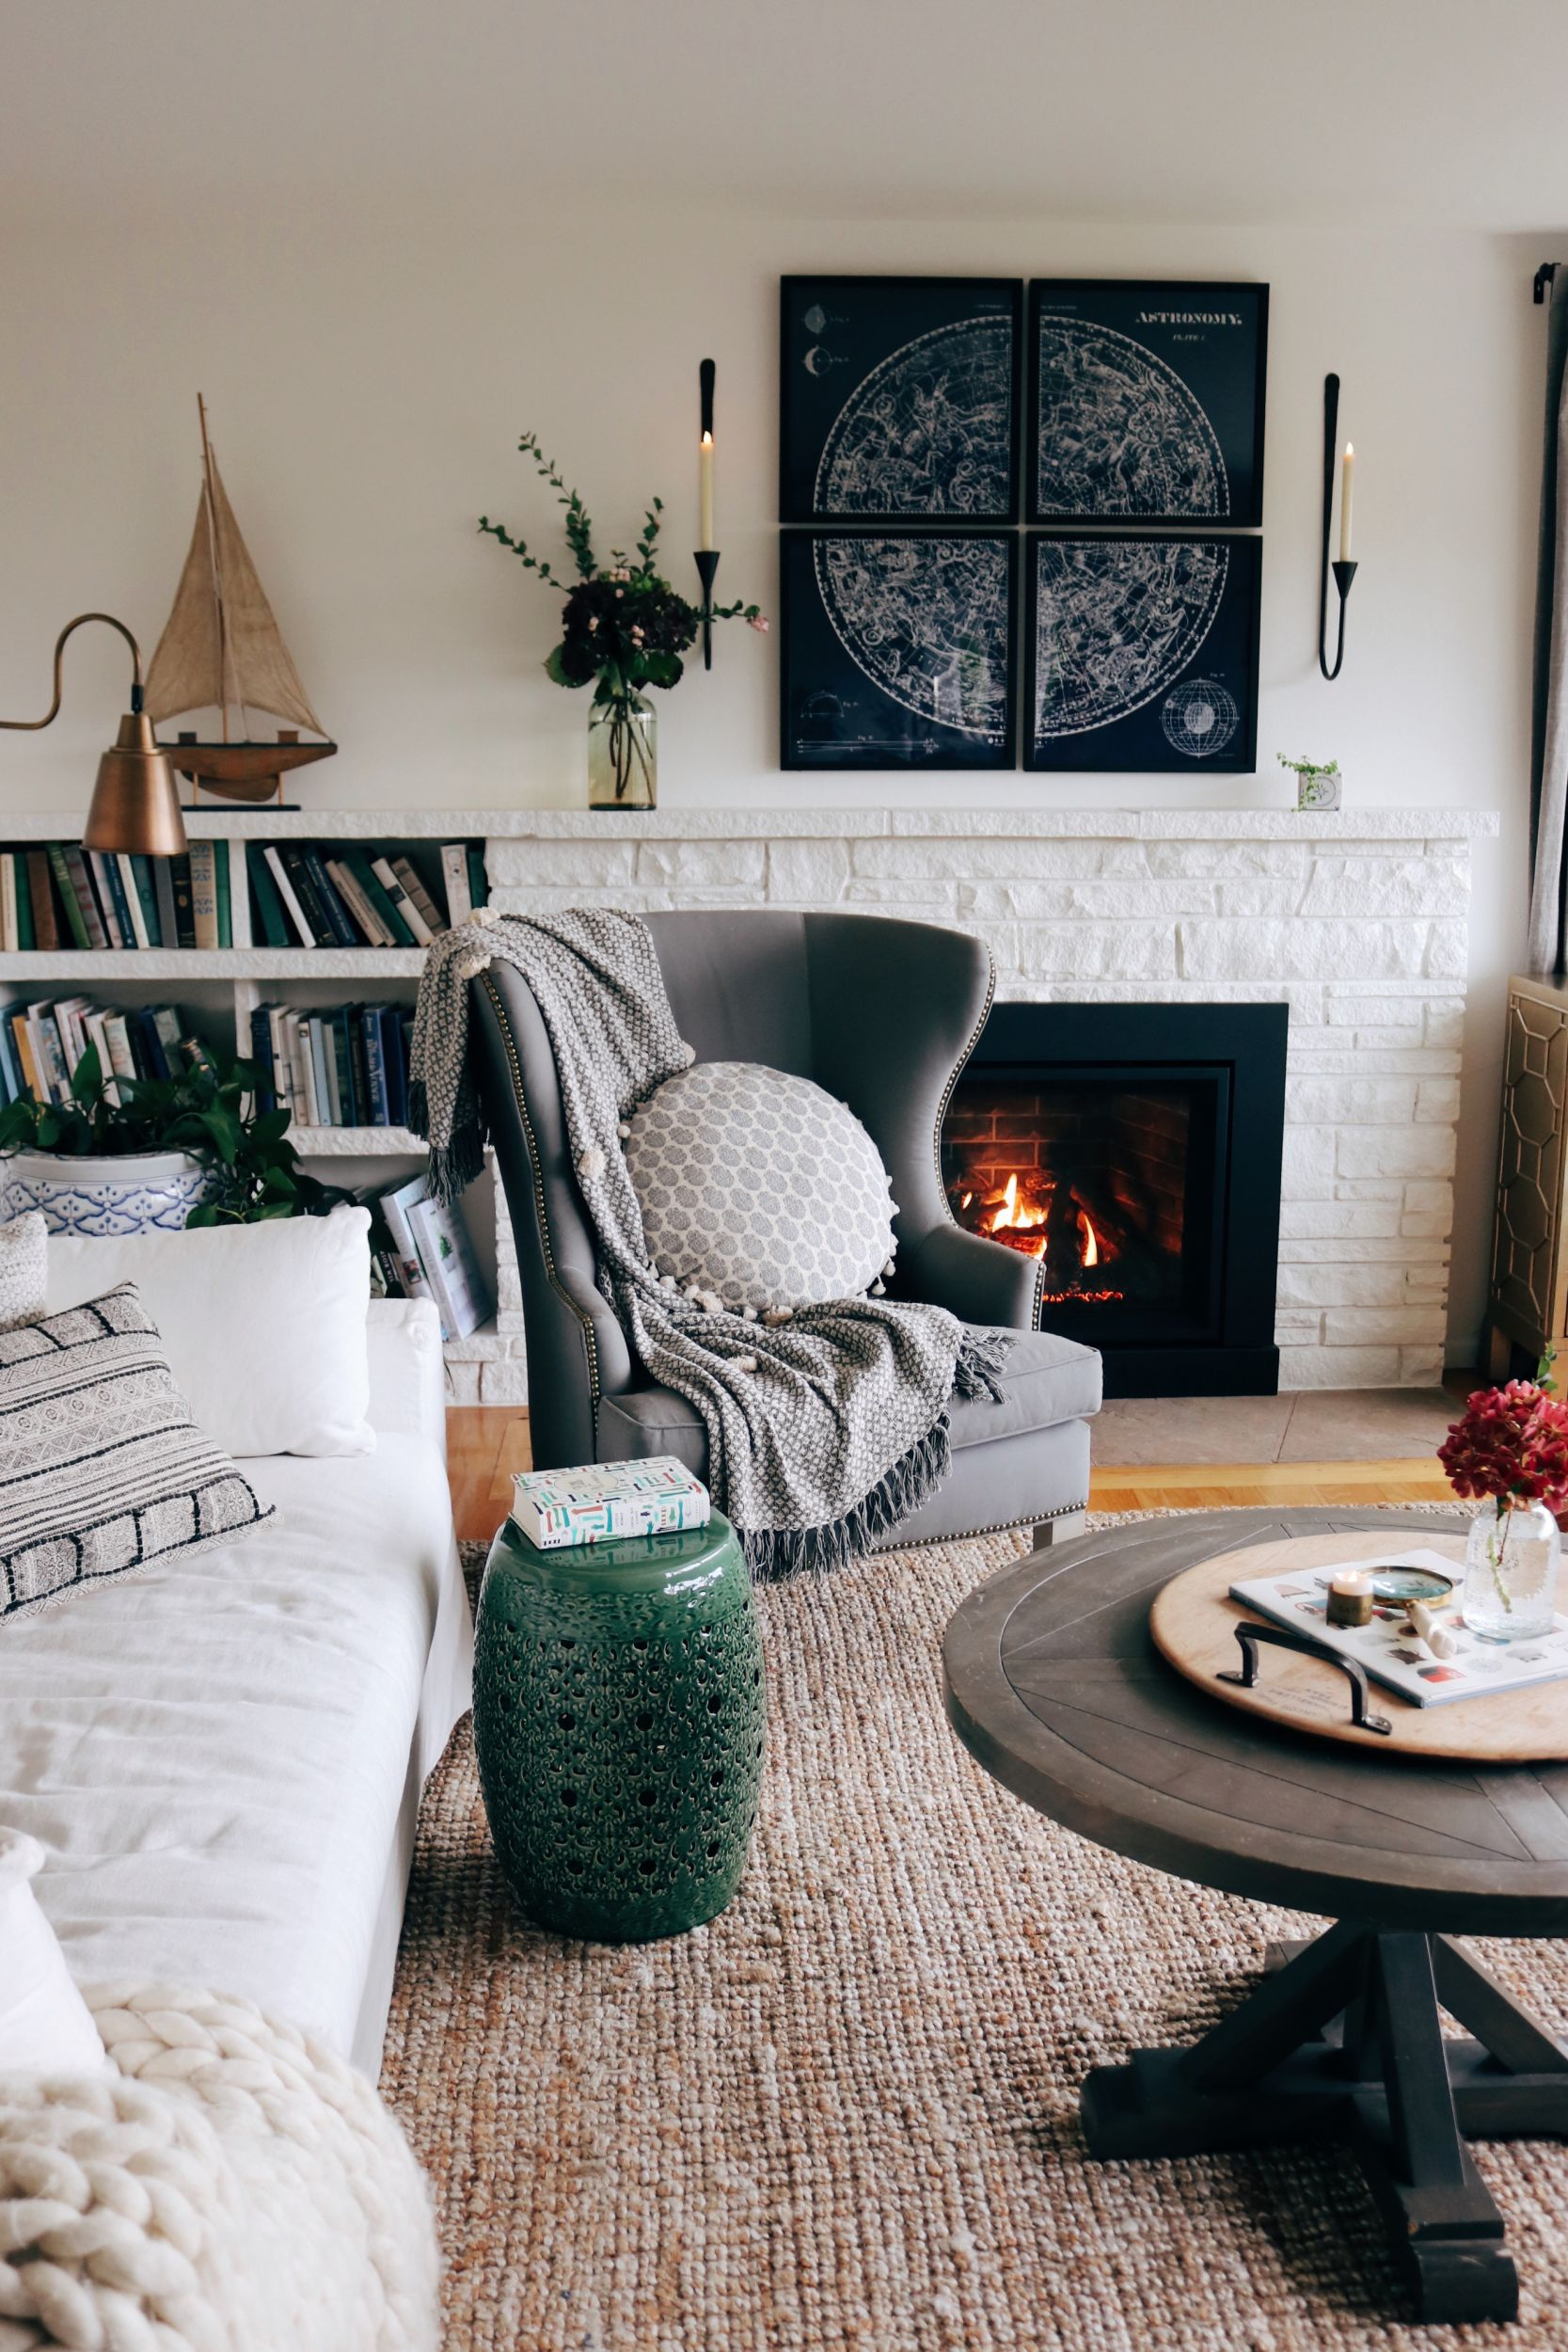 How to Be Happy with Your Home (2019 in review)